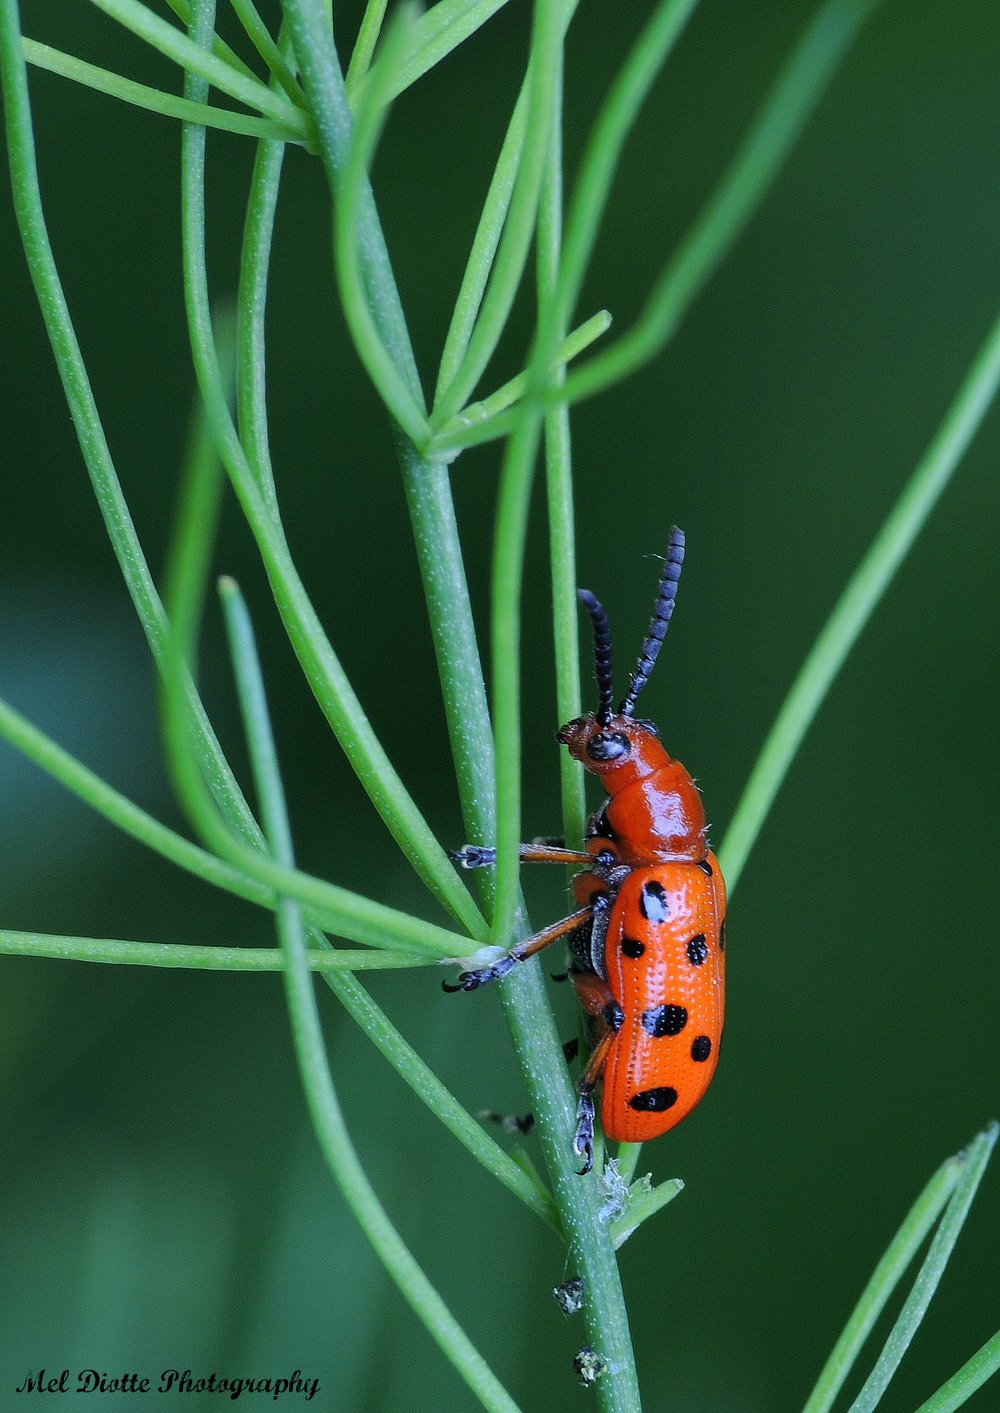 asparagus beetle june 11 2015signed.jpg